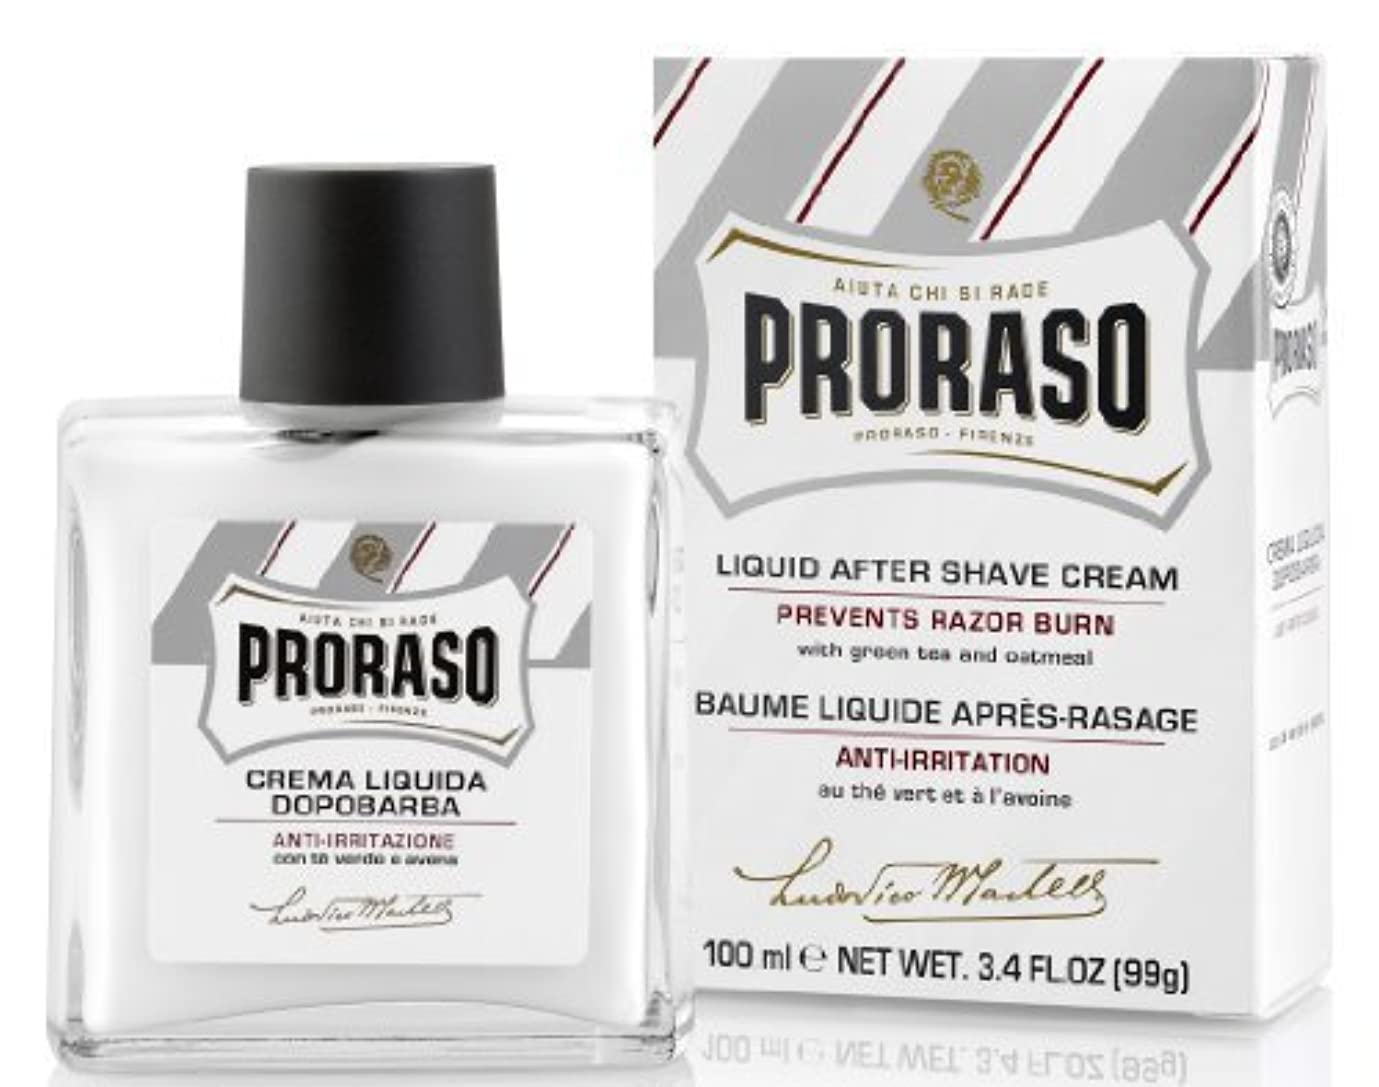 受付自動車こだわりProraso Proraso Liquid Cream After-Shave 3.4oz by Proraso [並行輸入品]